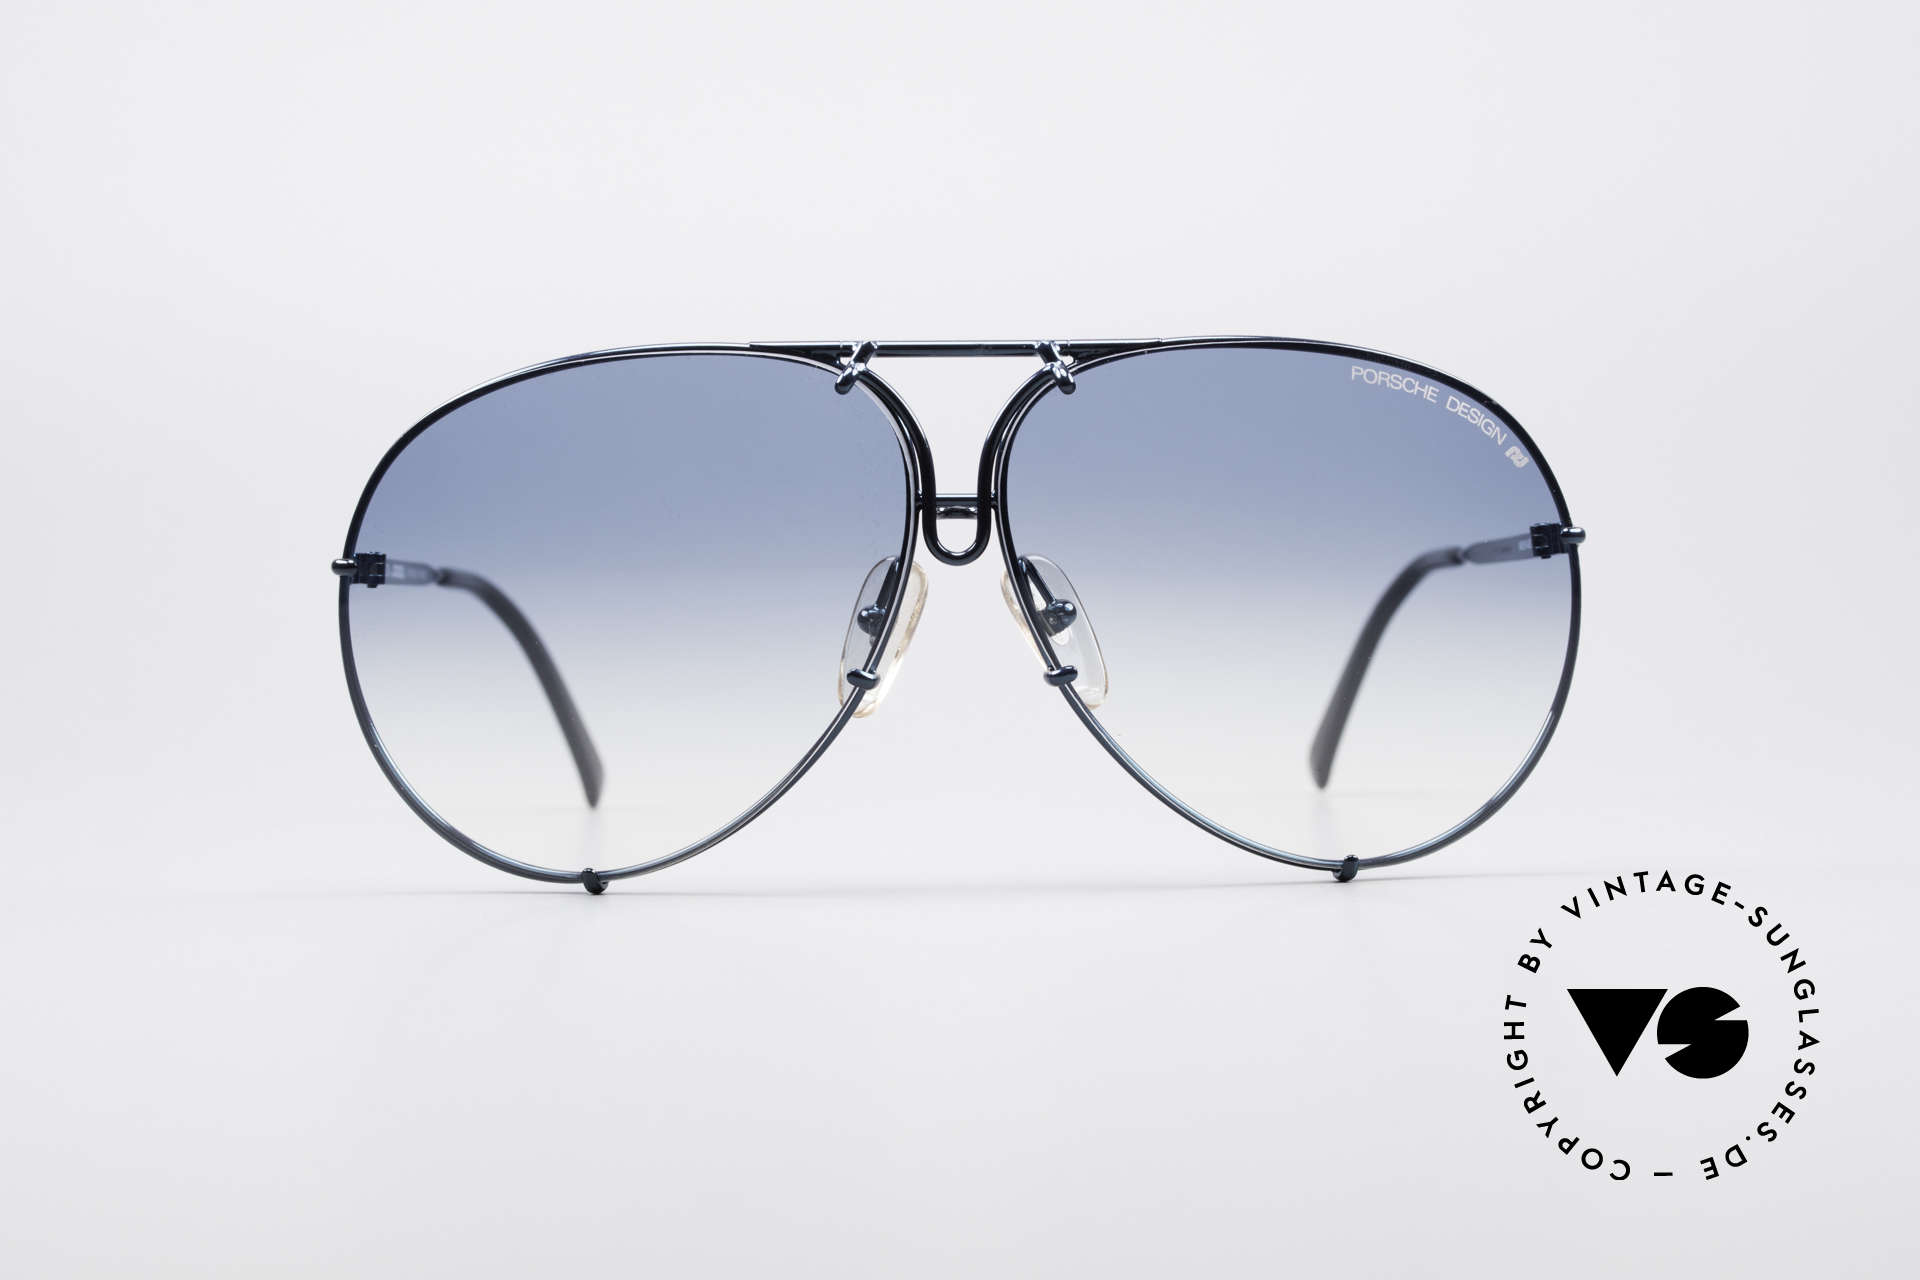 Porsche 5623 Rare 80's Aviator Sunglasses, the legendary classic with the interchangeable lenses, Made for Men and Women